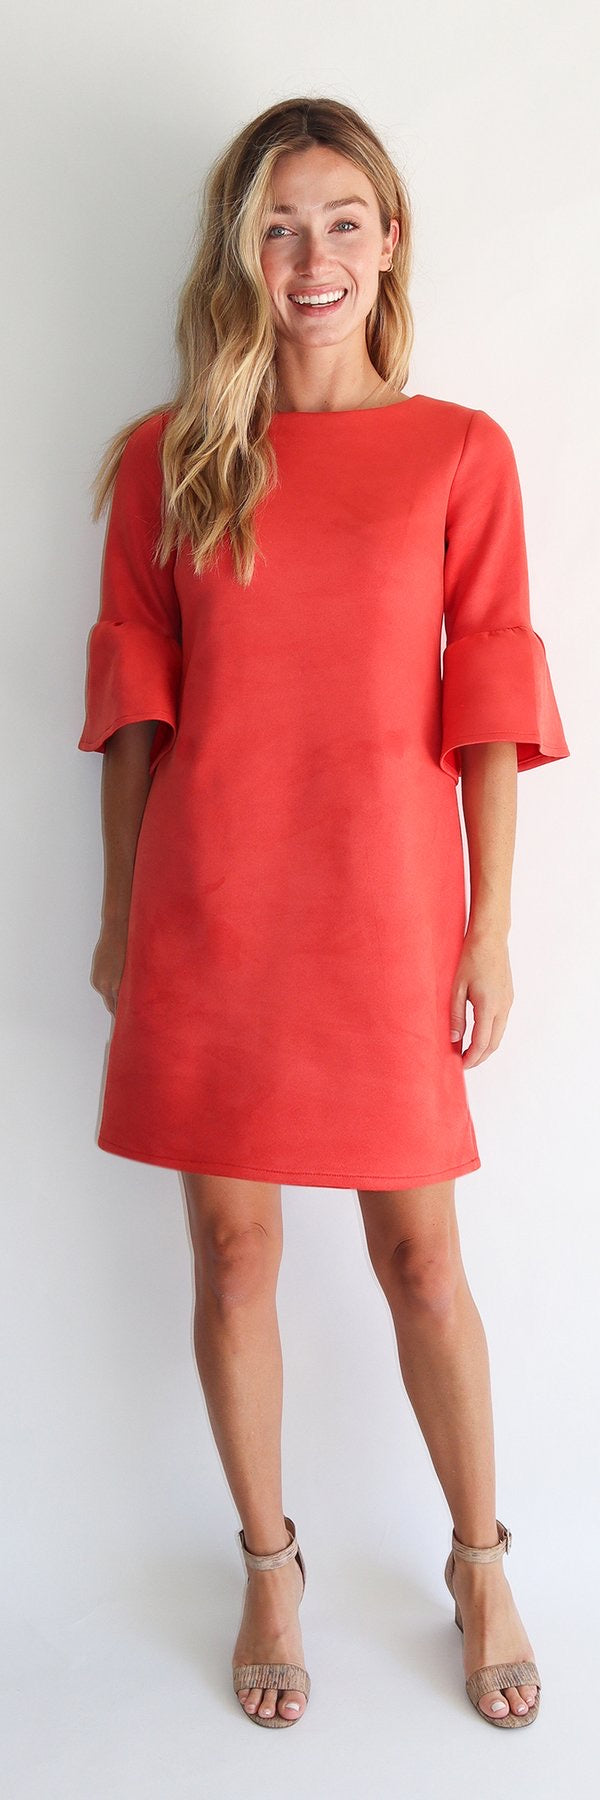 Faux Suede Shelby Dress in Tangerine by Jude Connally